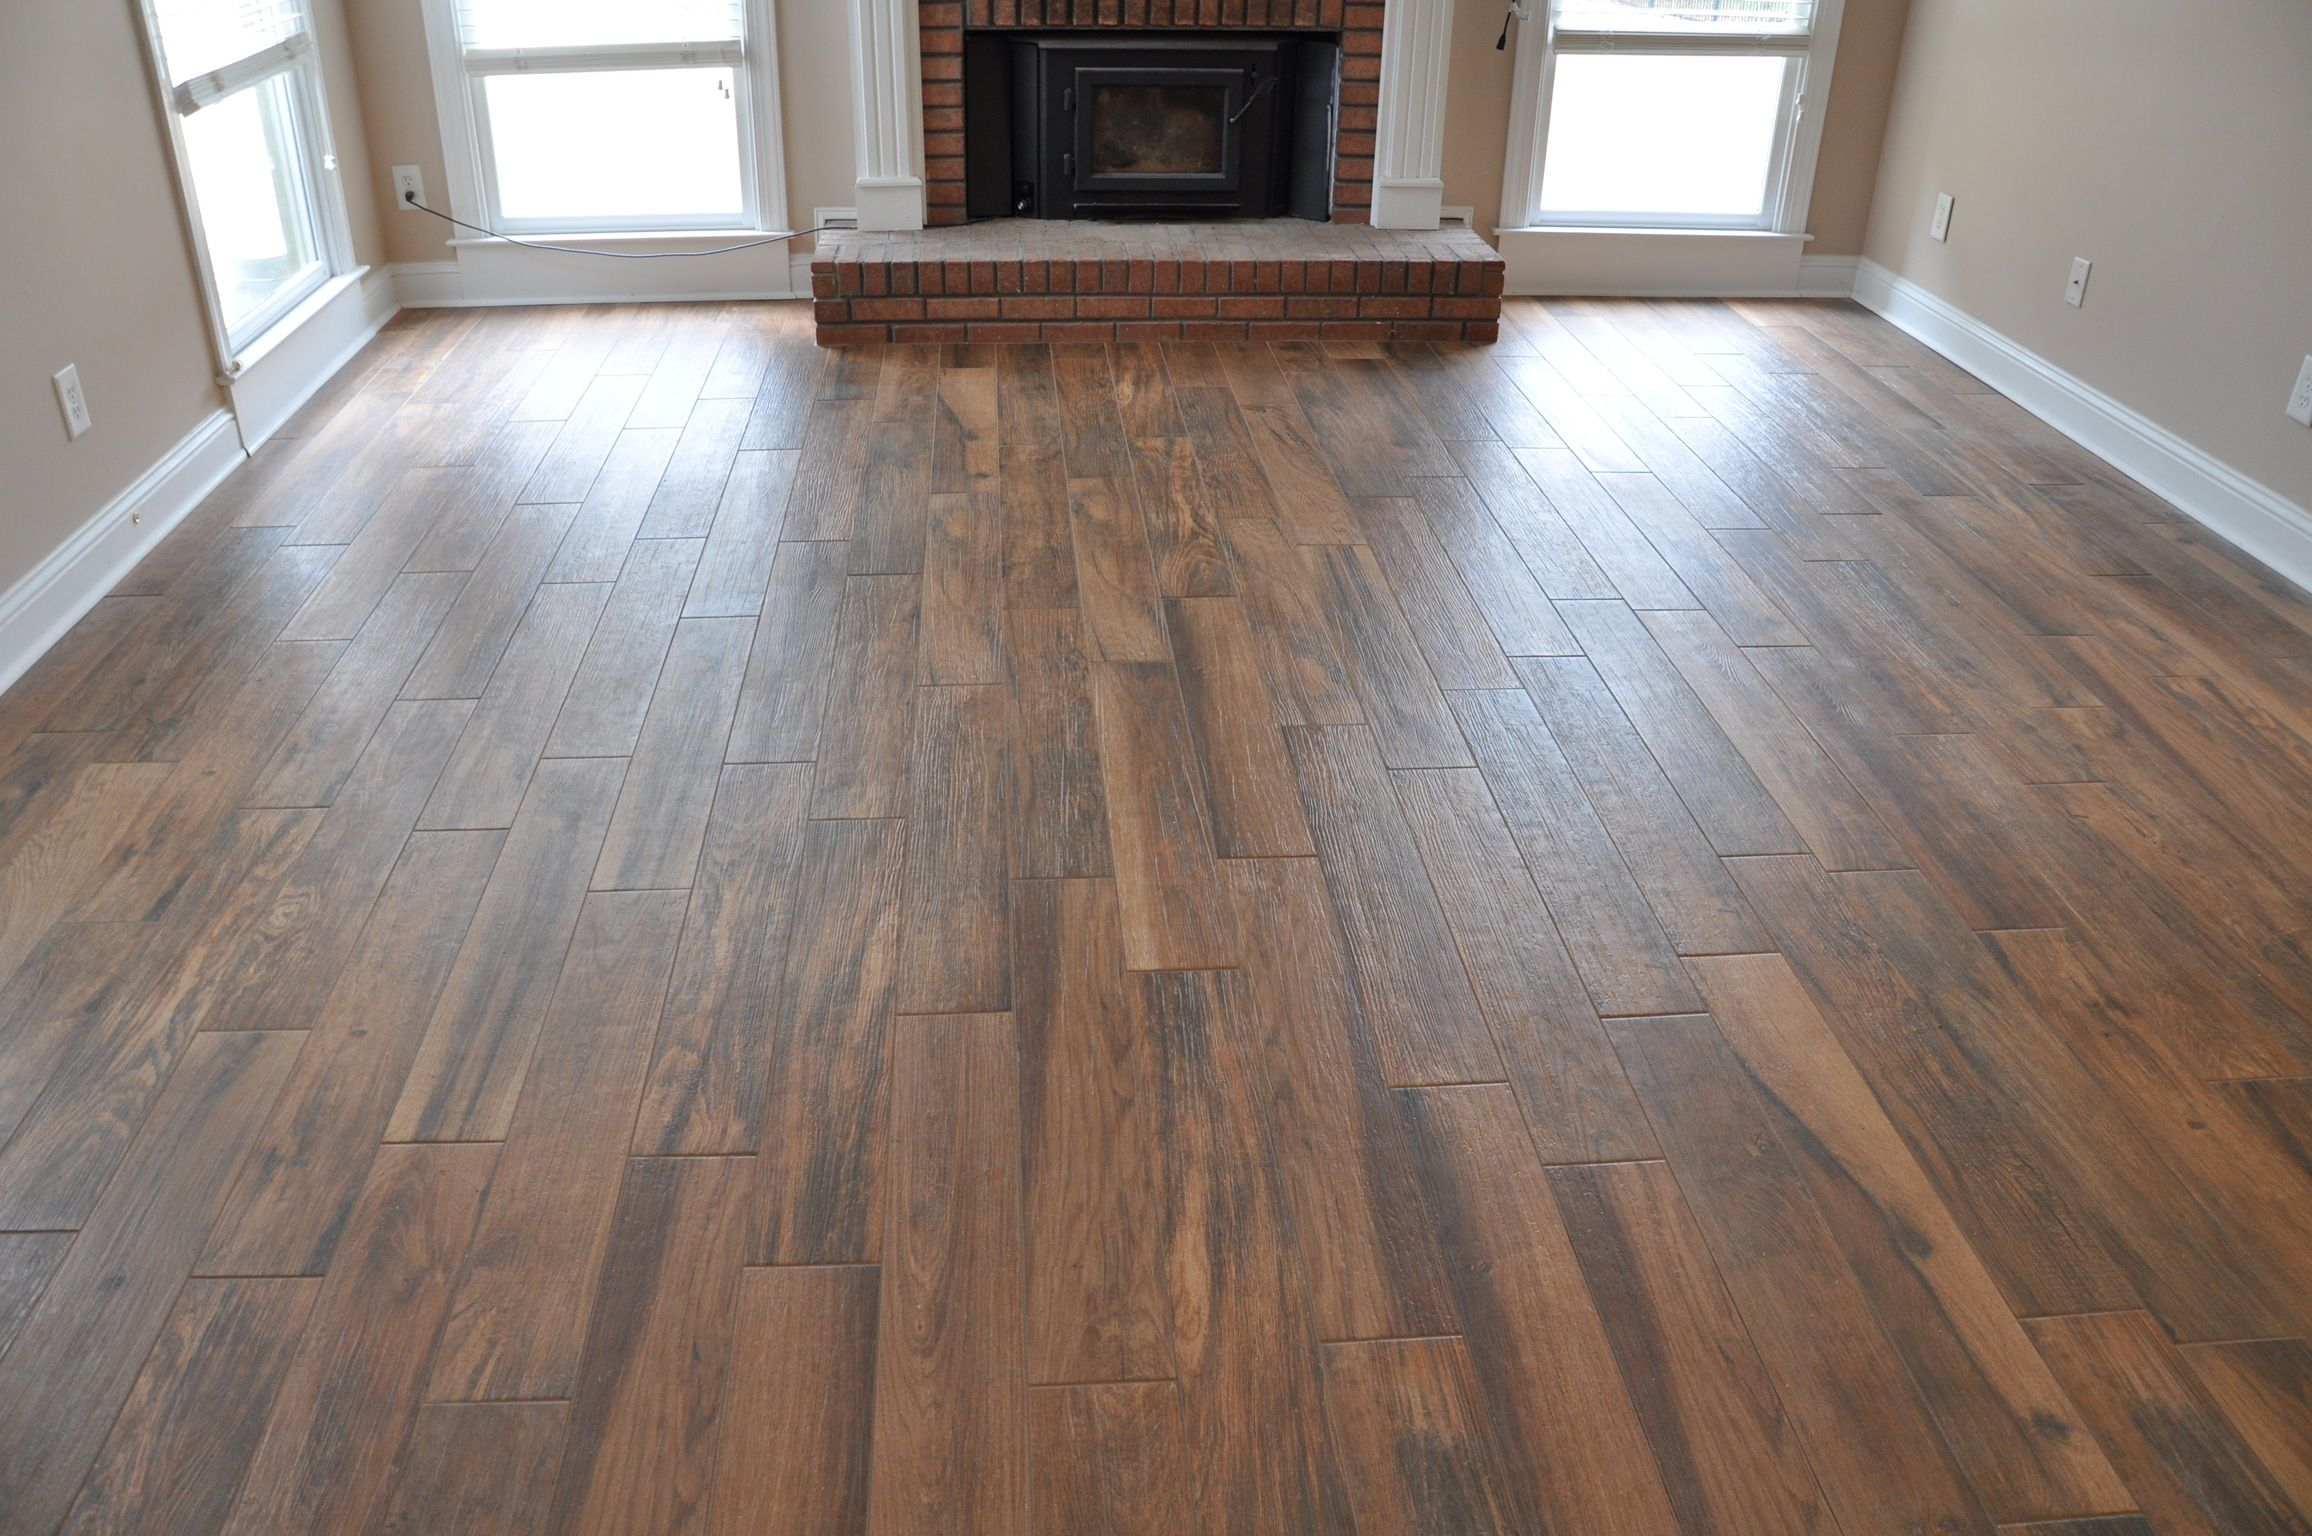 Wood look porcelain tile google search flooring for Tile and hardwood floor